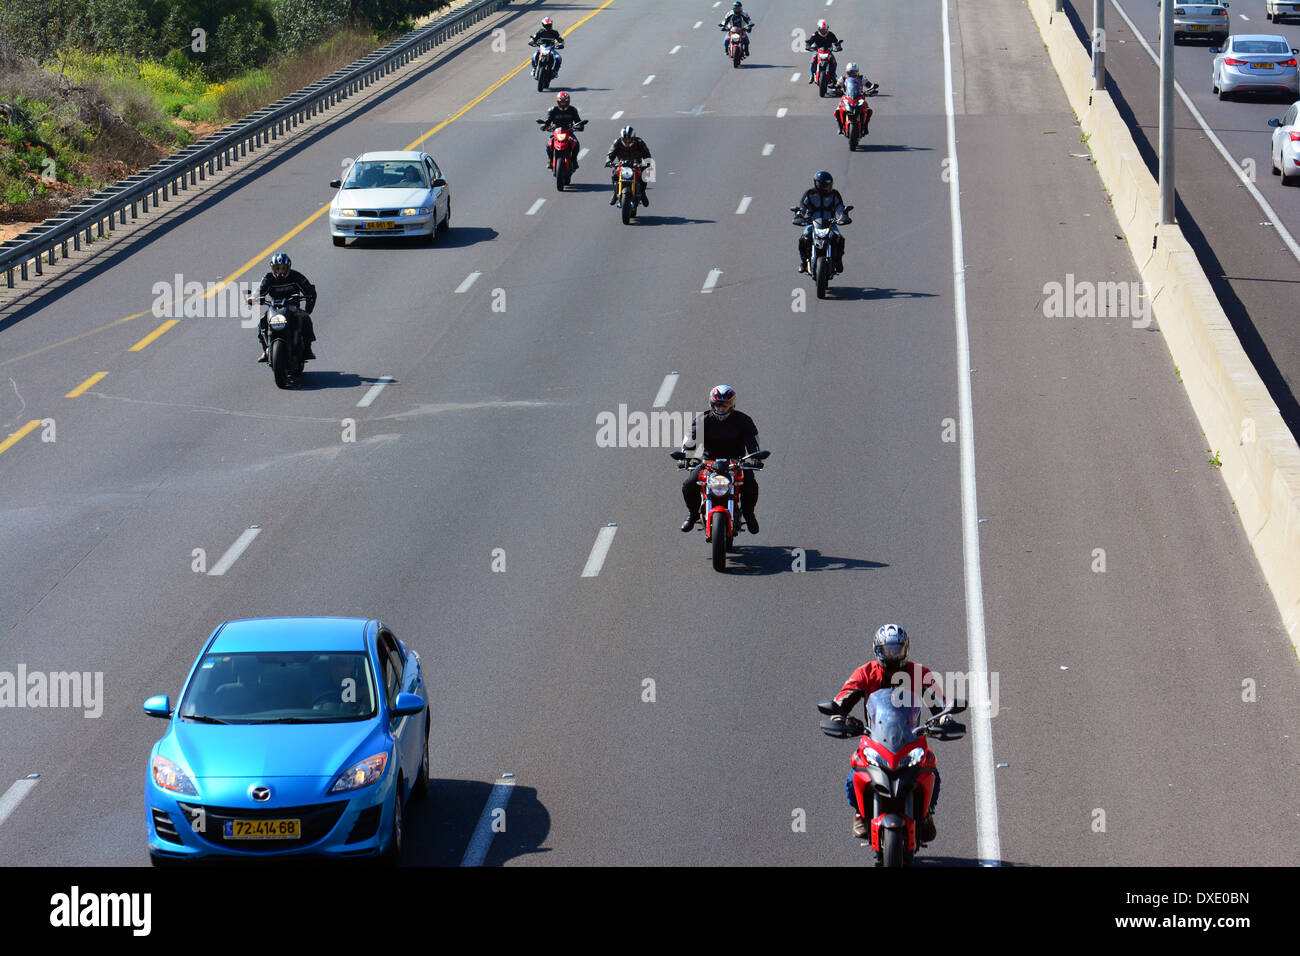 Motorcycles on highway, Israel - Stock Image